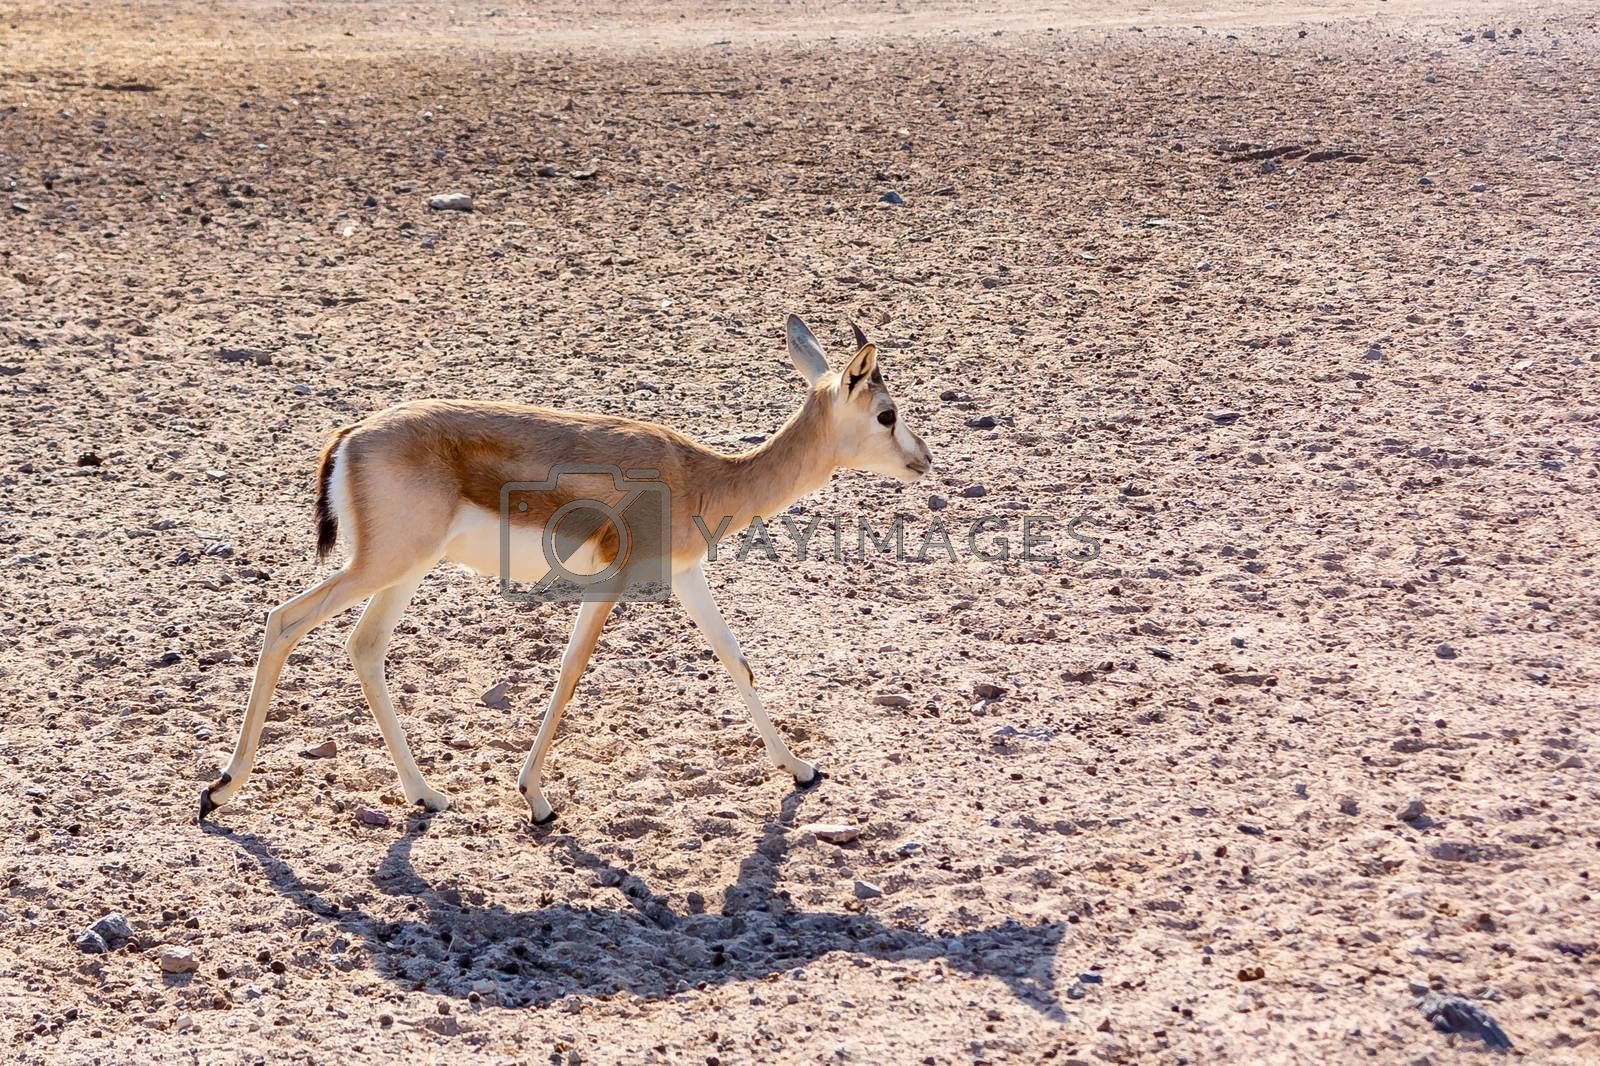 Young antelope in a safari park on the island of Sir Bani Yas, United Arab Emirates by galsand